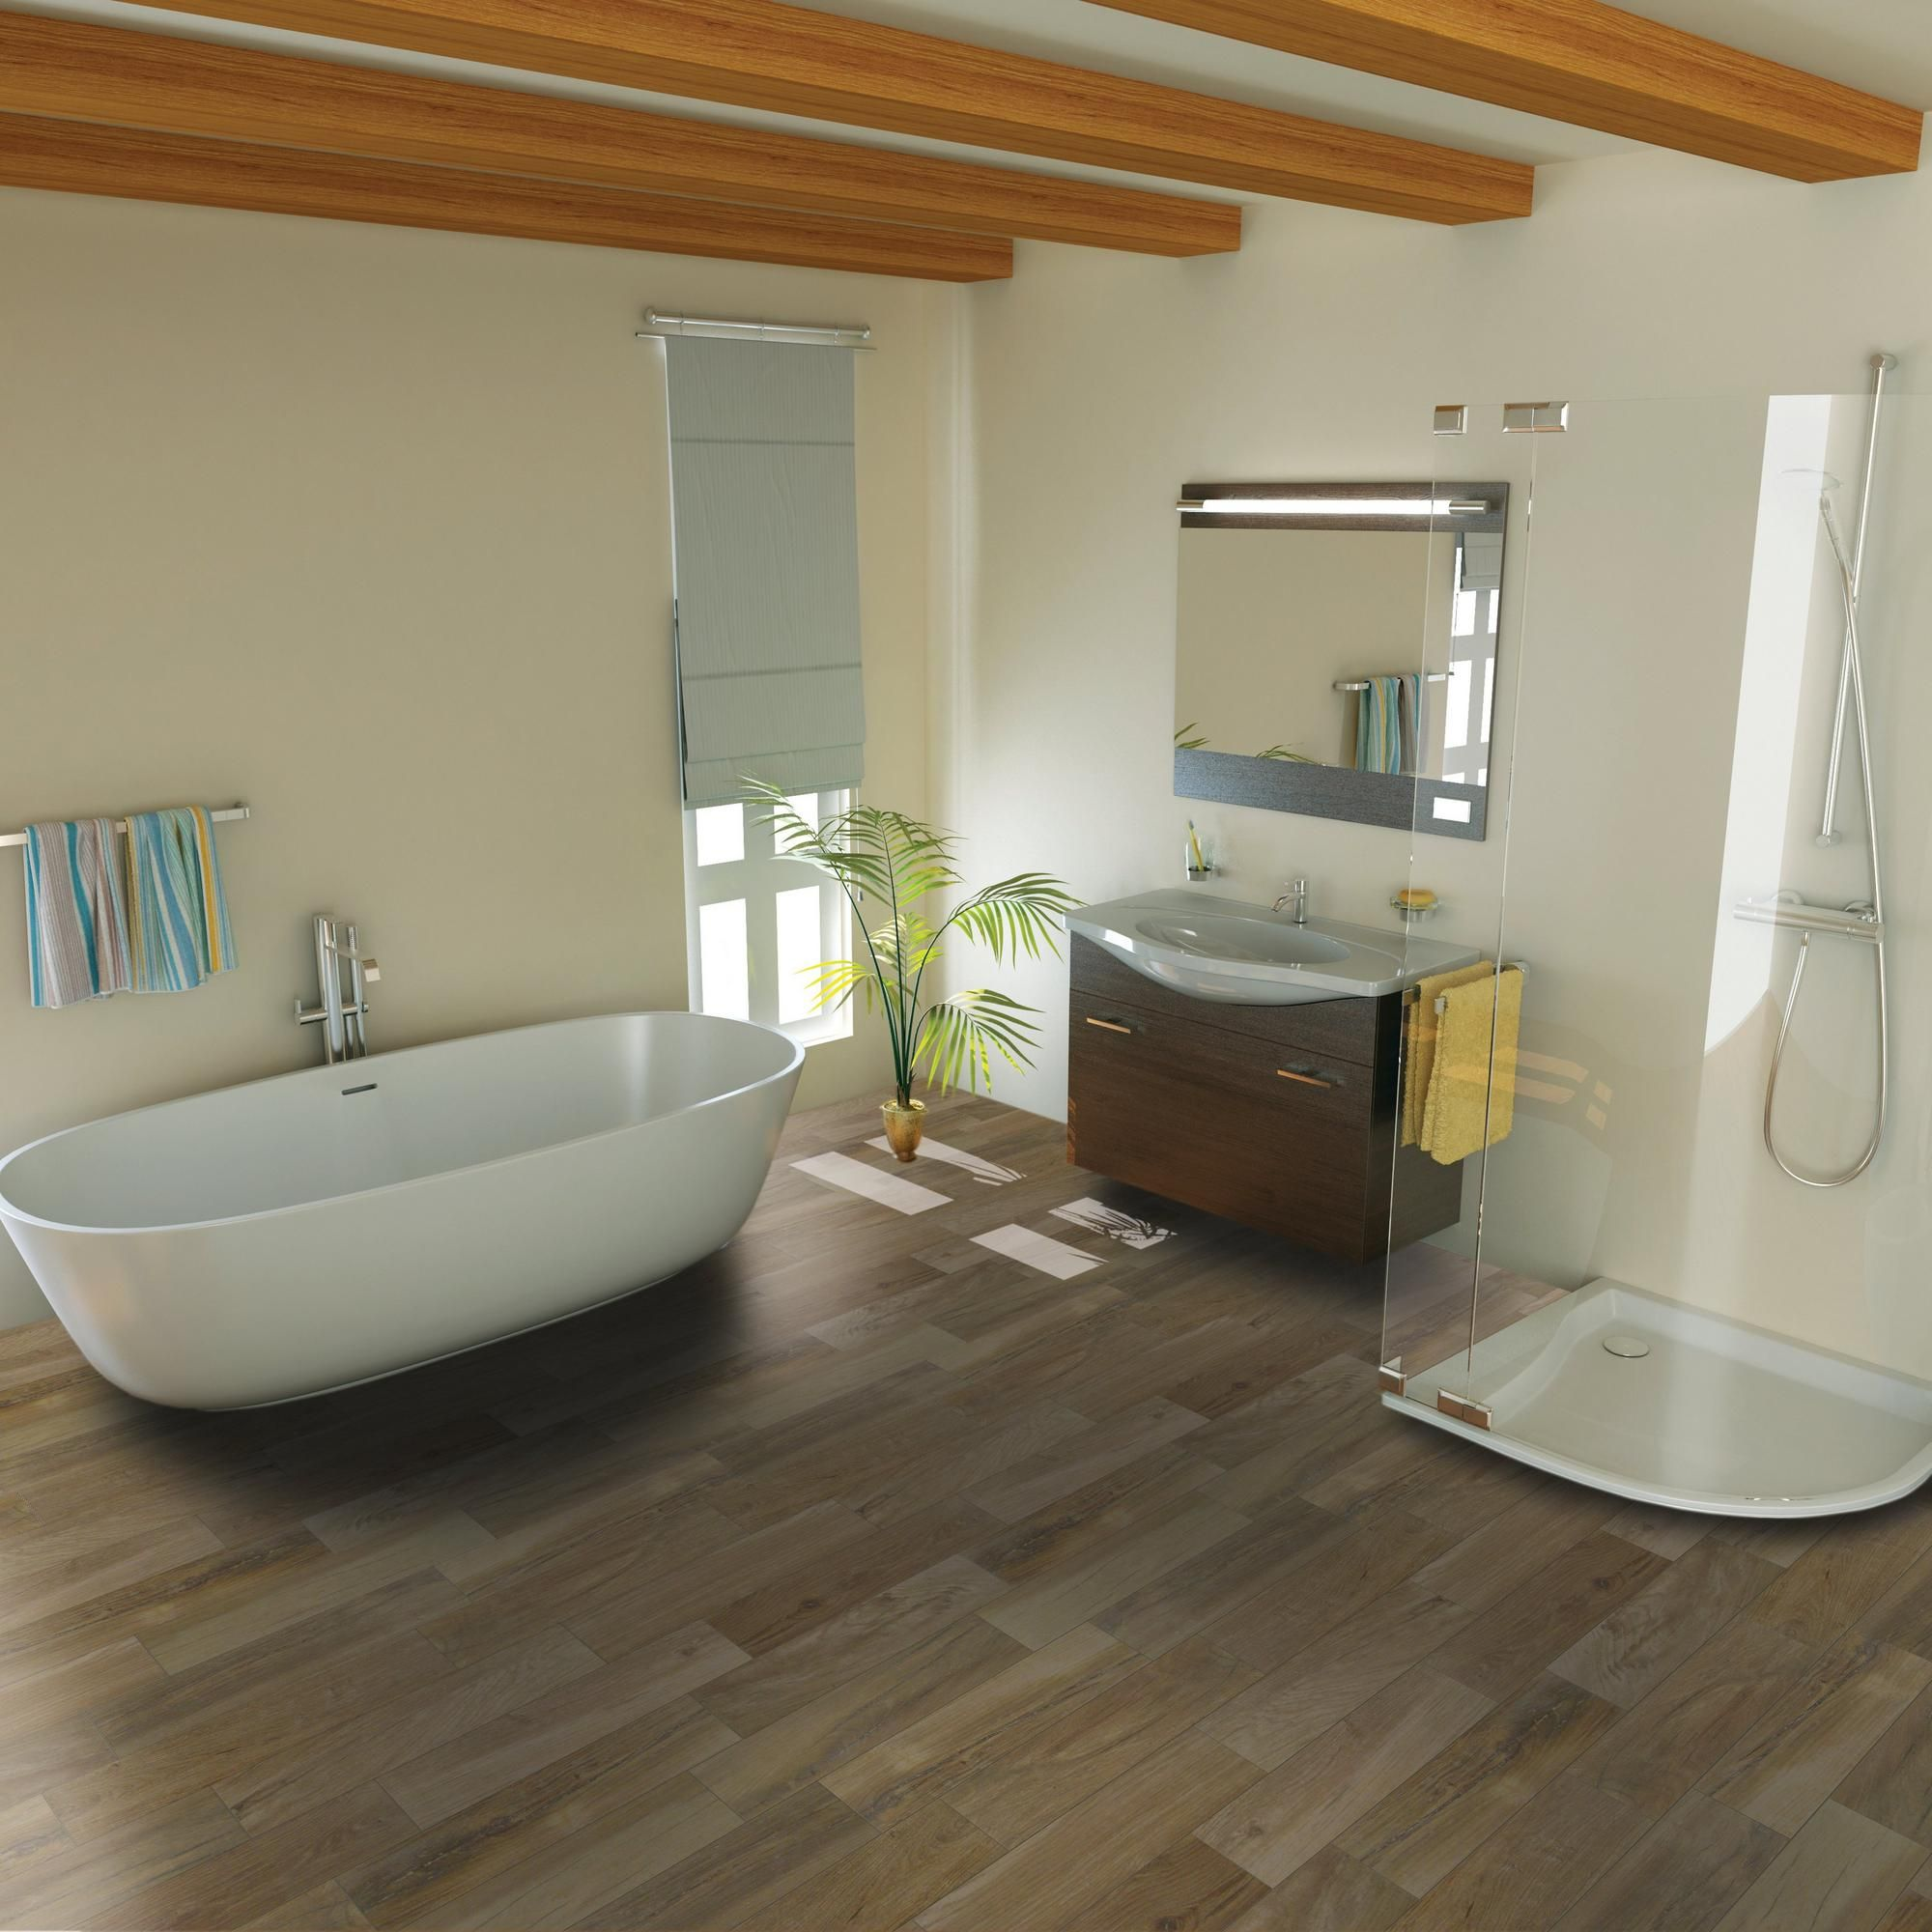 Floor And Decor Bathroom Tile Awesome Tahoe Ocre Wood Plank Porcelain Tile  Wood Planks Porcelain Tile Inspiration Design